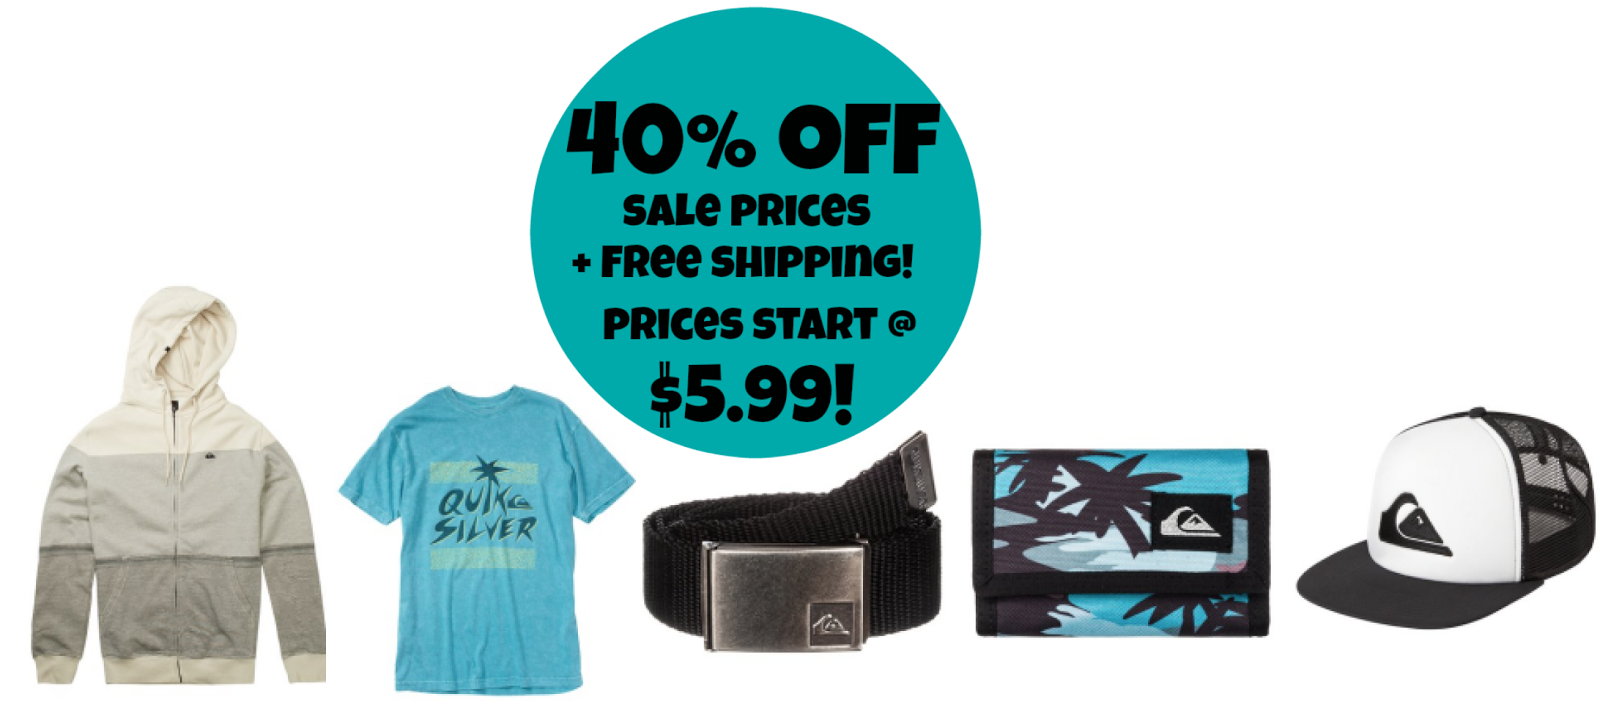 http://www.thebinderladies.com/2015/01/quiksilver-40-off-sale-items-free.html#.VLBnDIfduyM